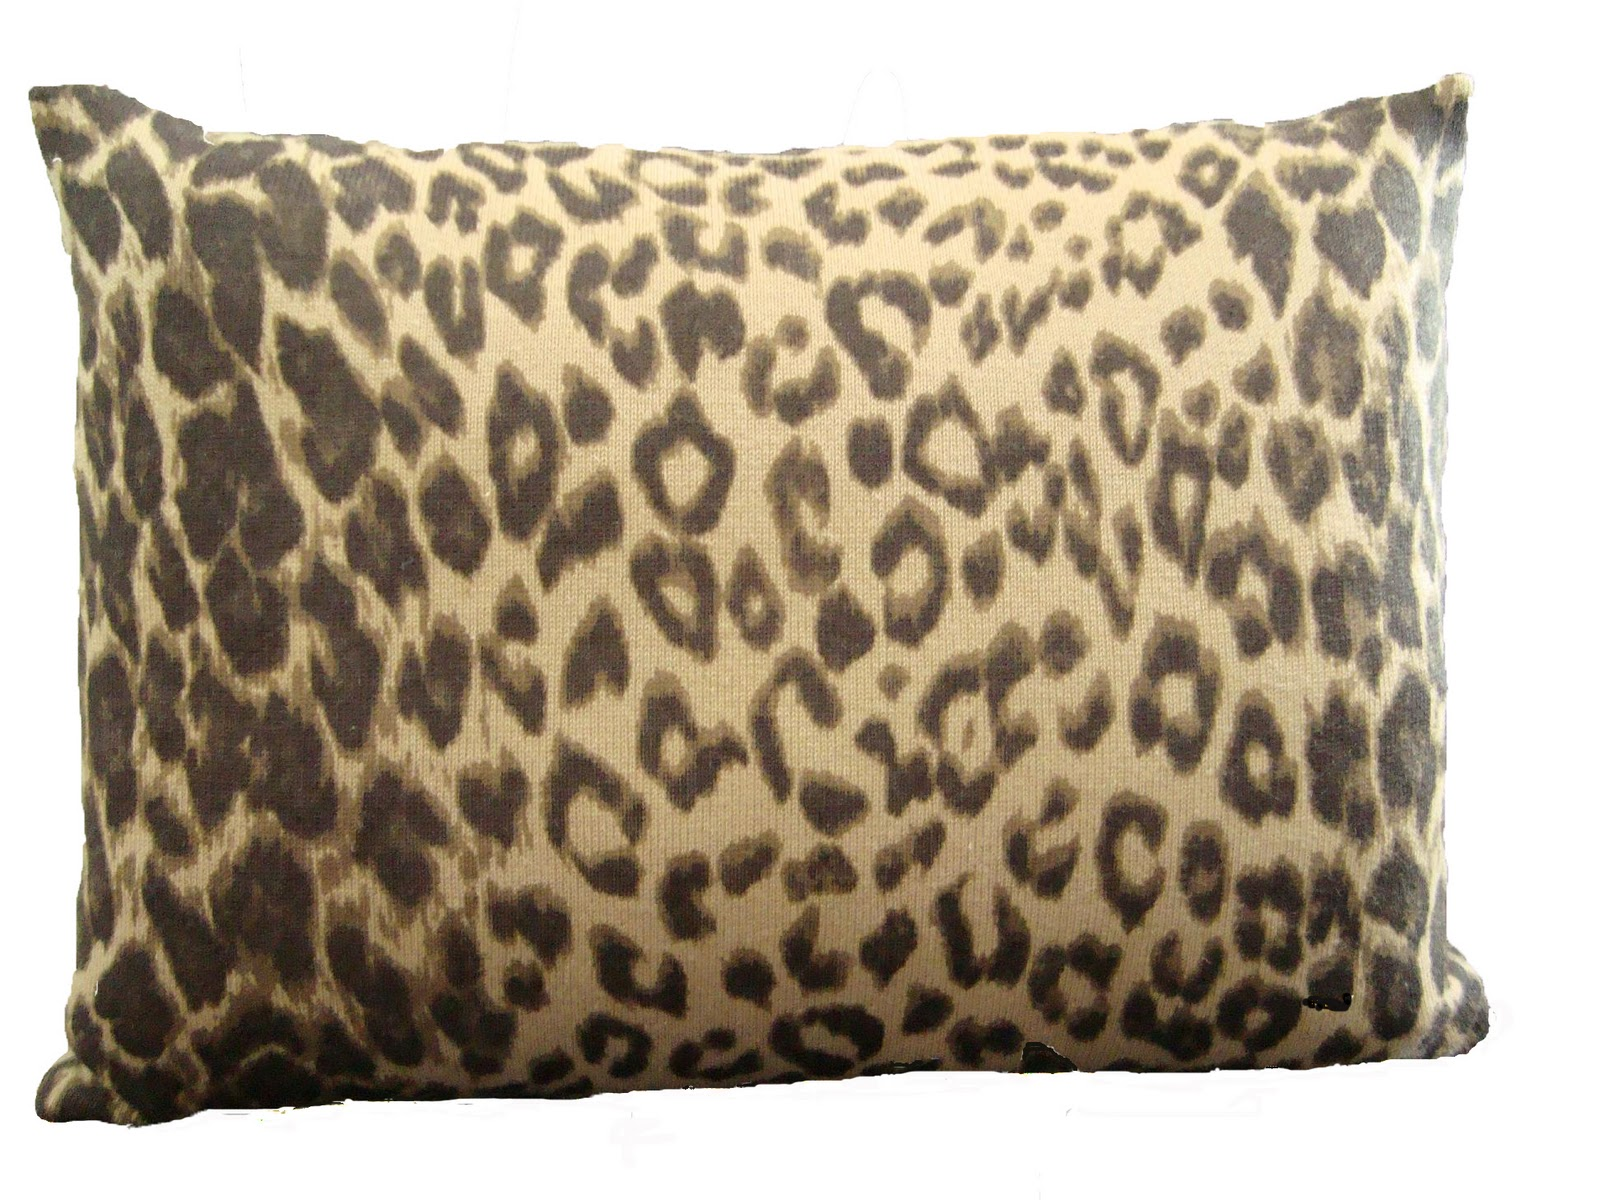 Slumber Designs: Animal Print Pillows